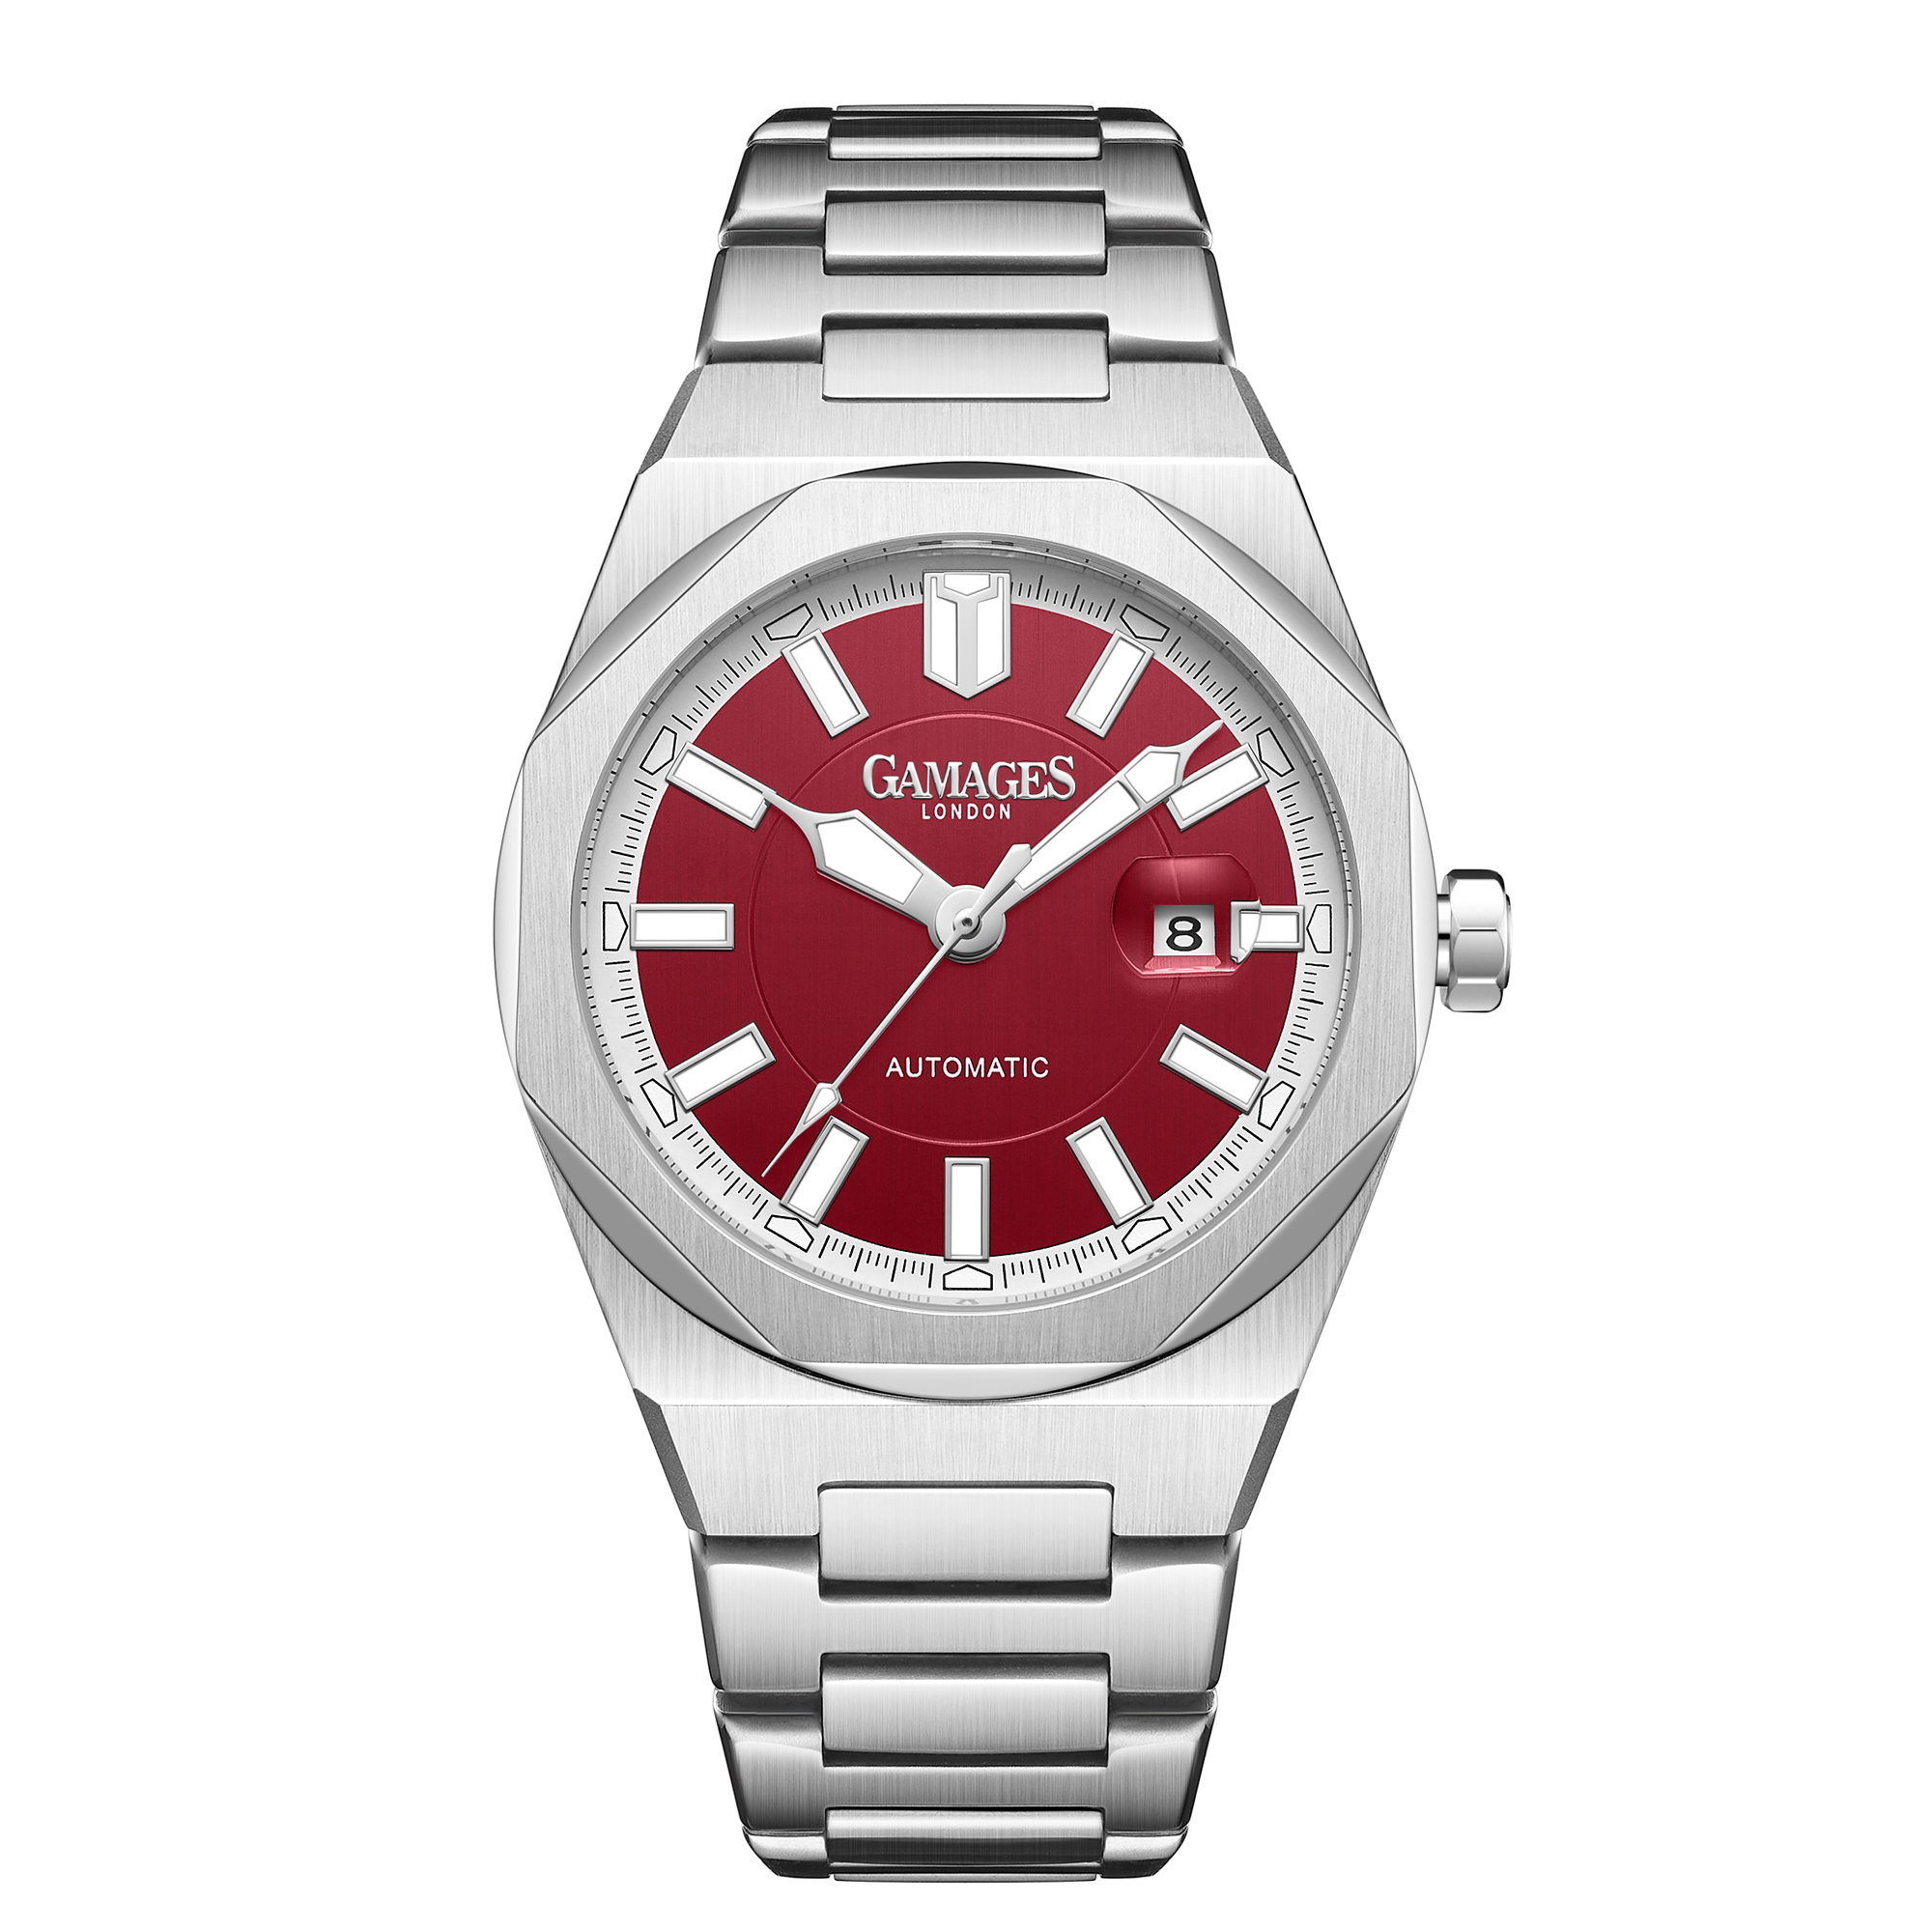 Ltd Edition Hand Assembled GAMAGES Quintessential Automatic Red – 5 Year Warranty & Free Delivery